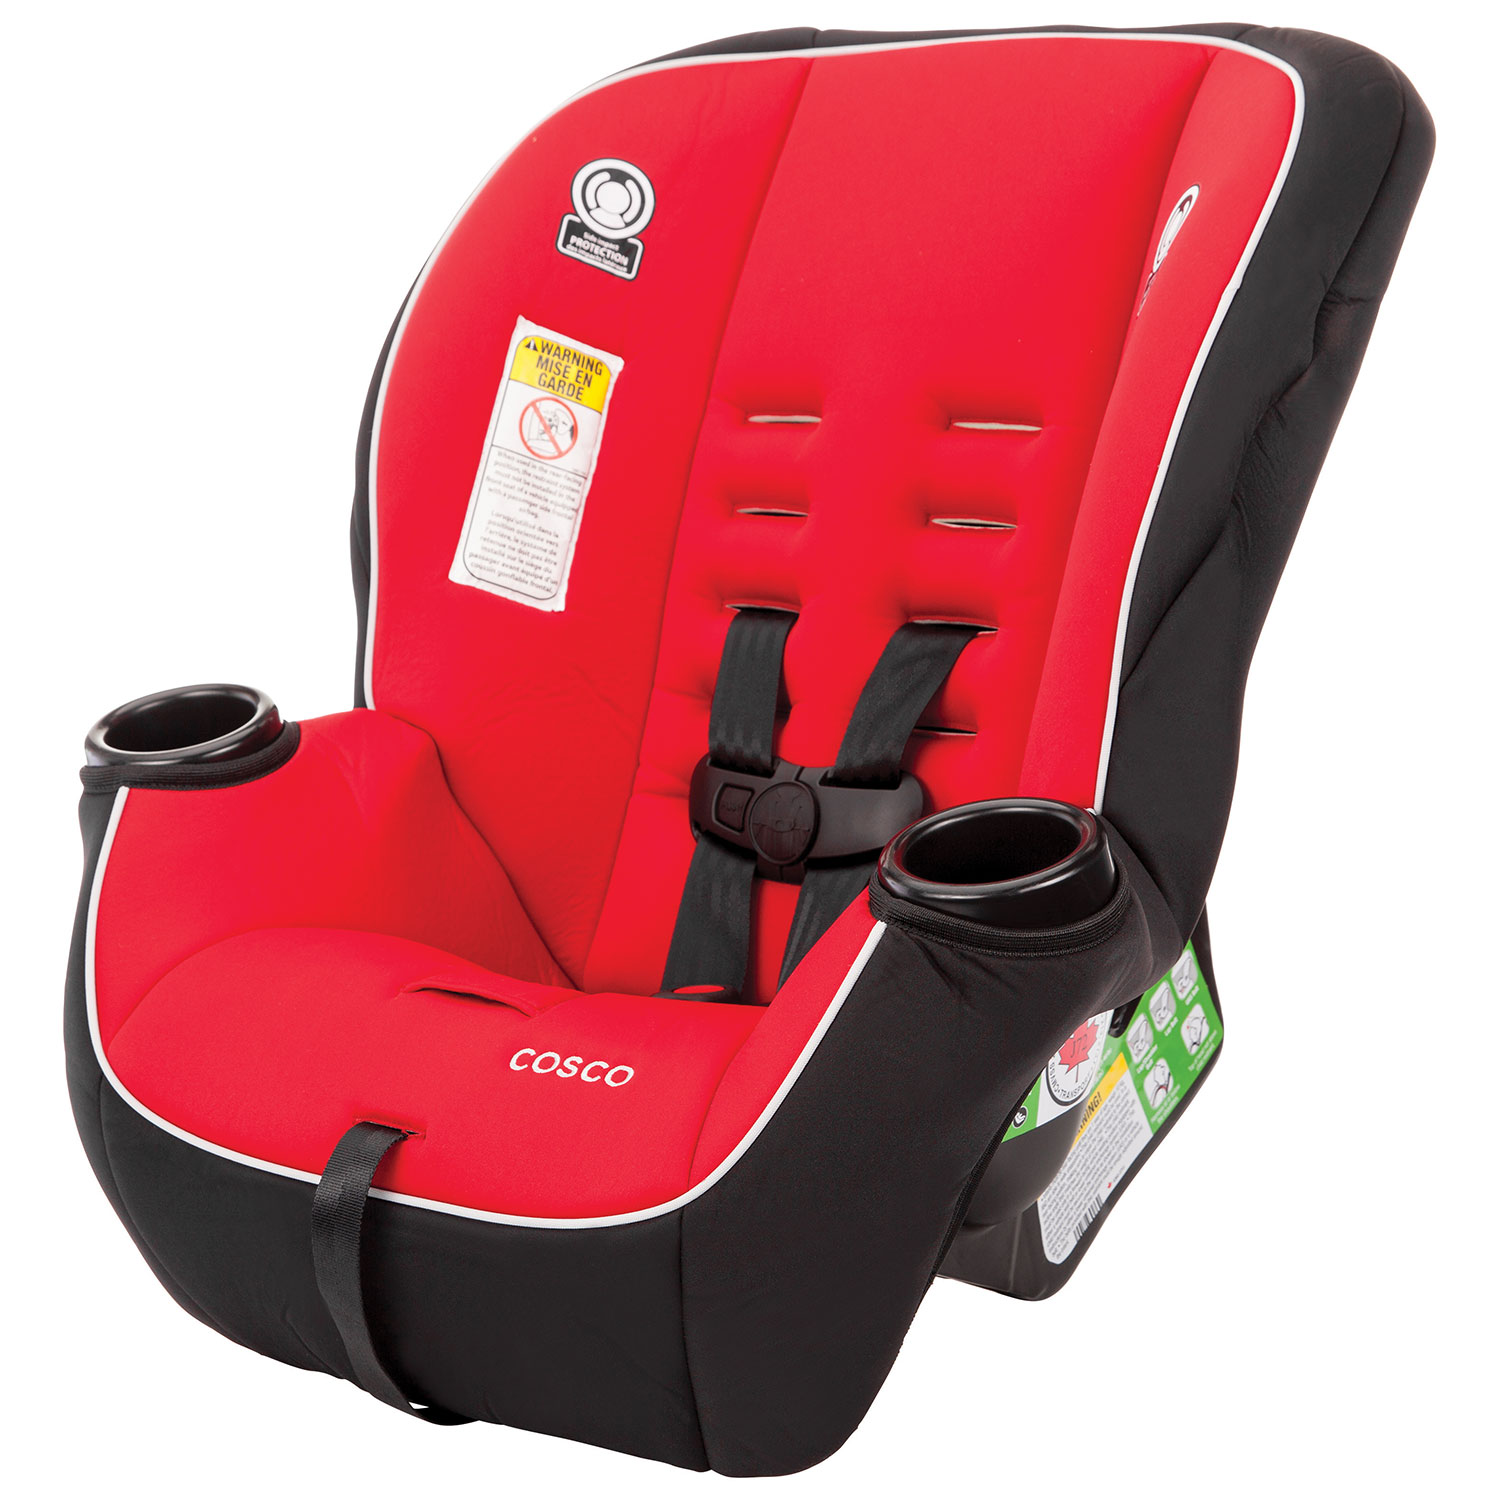 cosco car seat expiration date canada. Black Bedroom Furniture Sets. Home Design Ideas